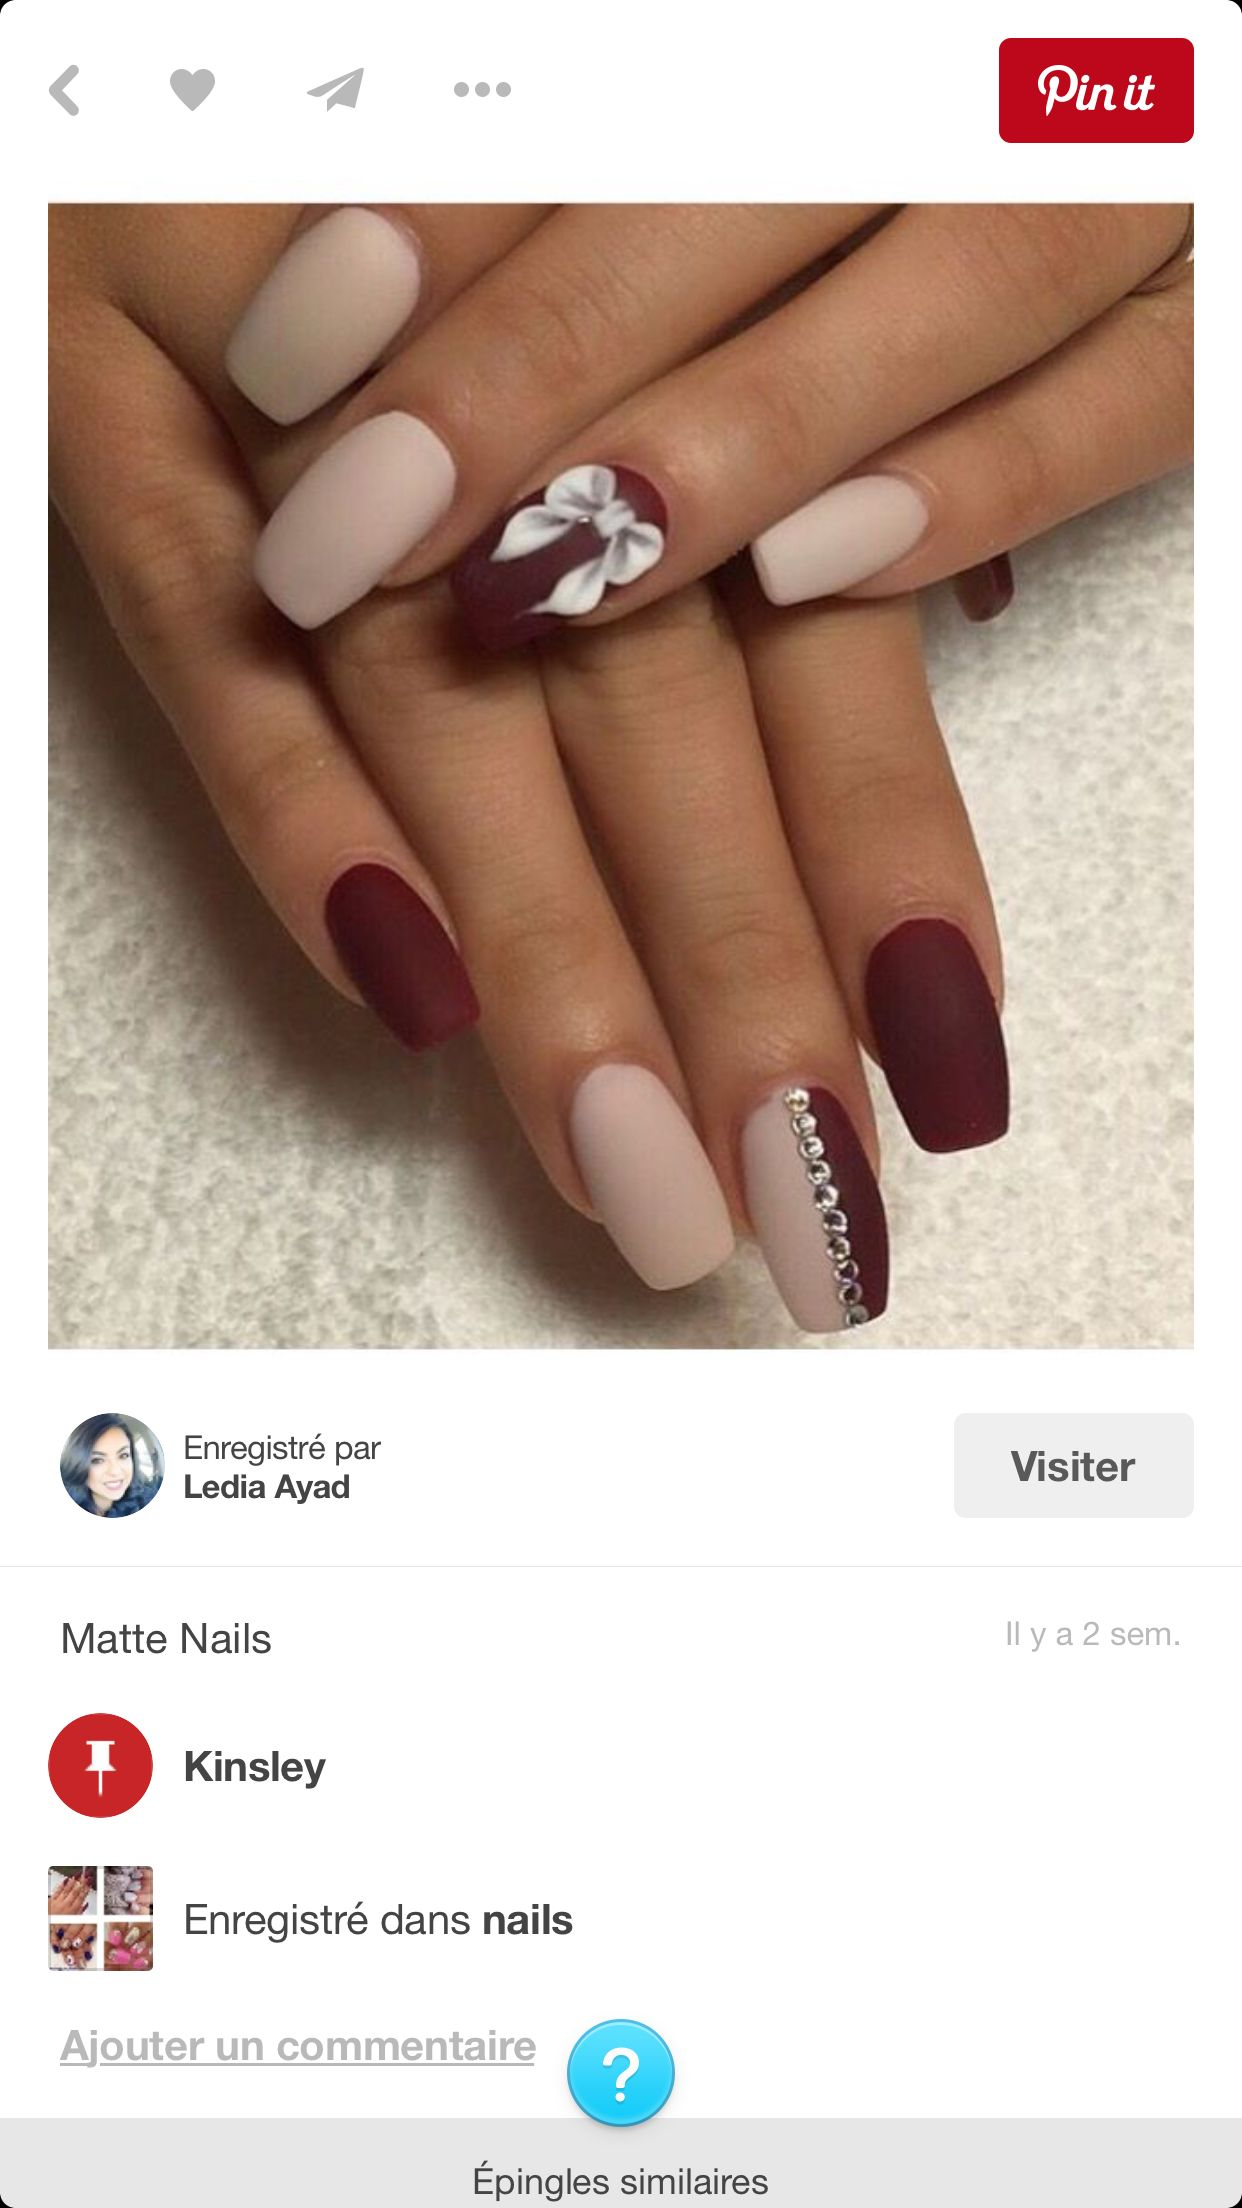 Pin by Andrea Kelly on Nails | Pinterest | Manicure, Nail shop and ...